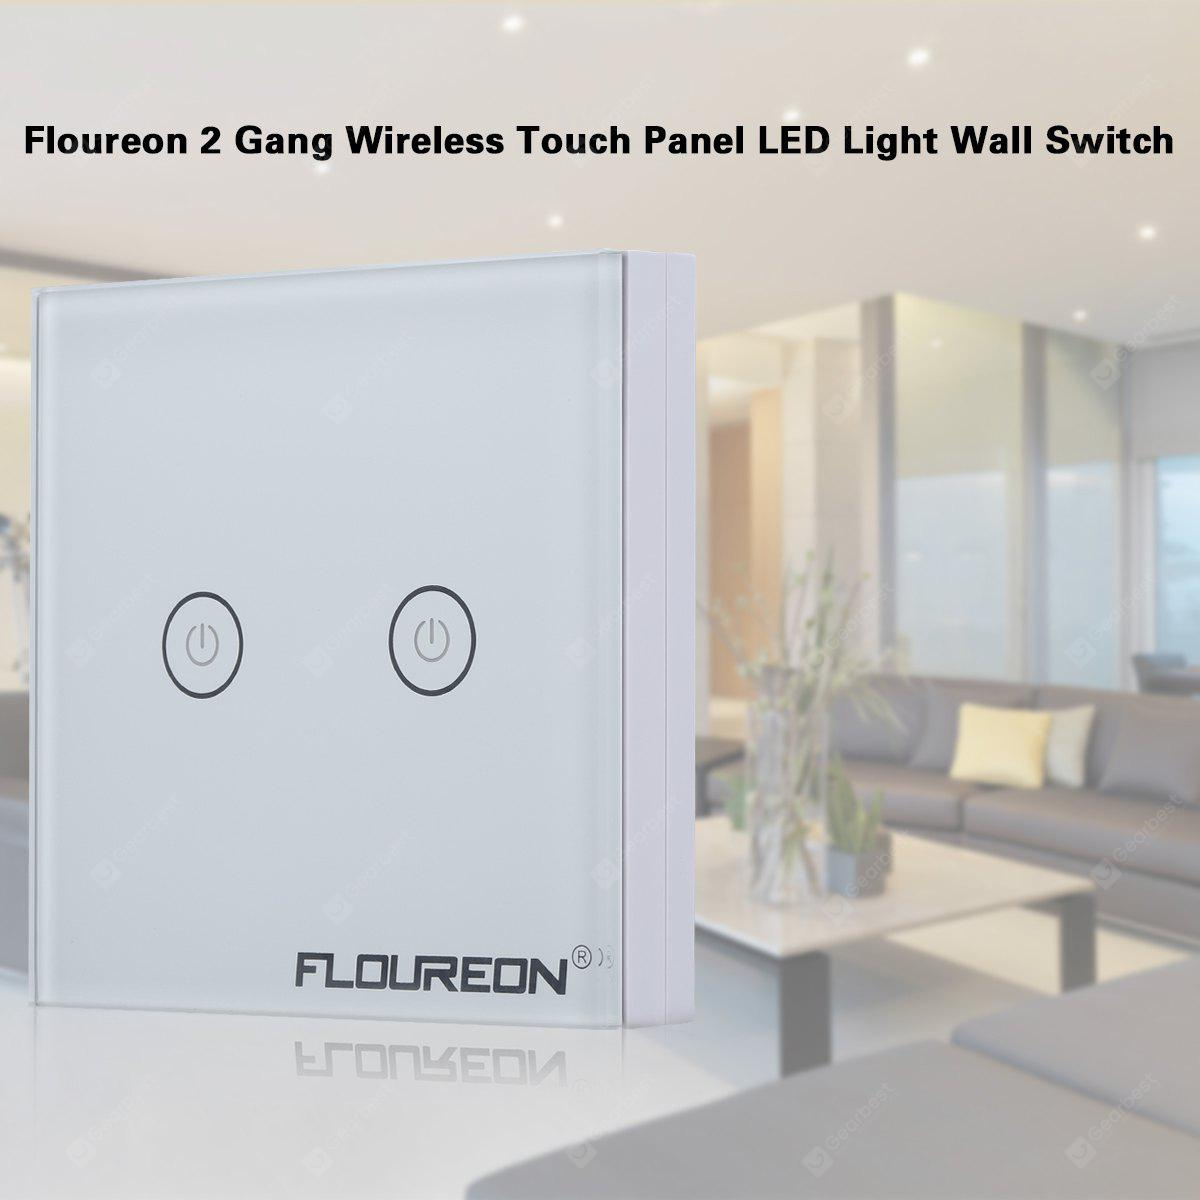 Floureon 2 Gang 1 Way Wireless RF Remote Control Light Switch 433.92MHz Remote Controller Portable Switch Wall Switch LED Light White Tempered Glass Panel Two Receivers - WHITE